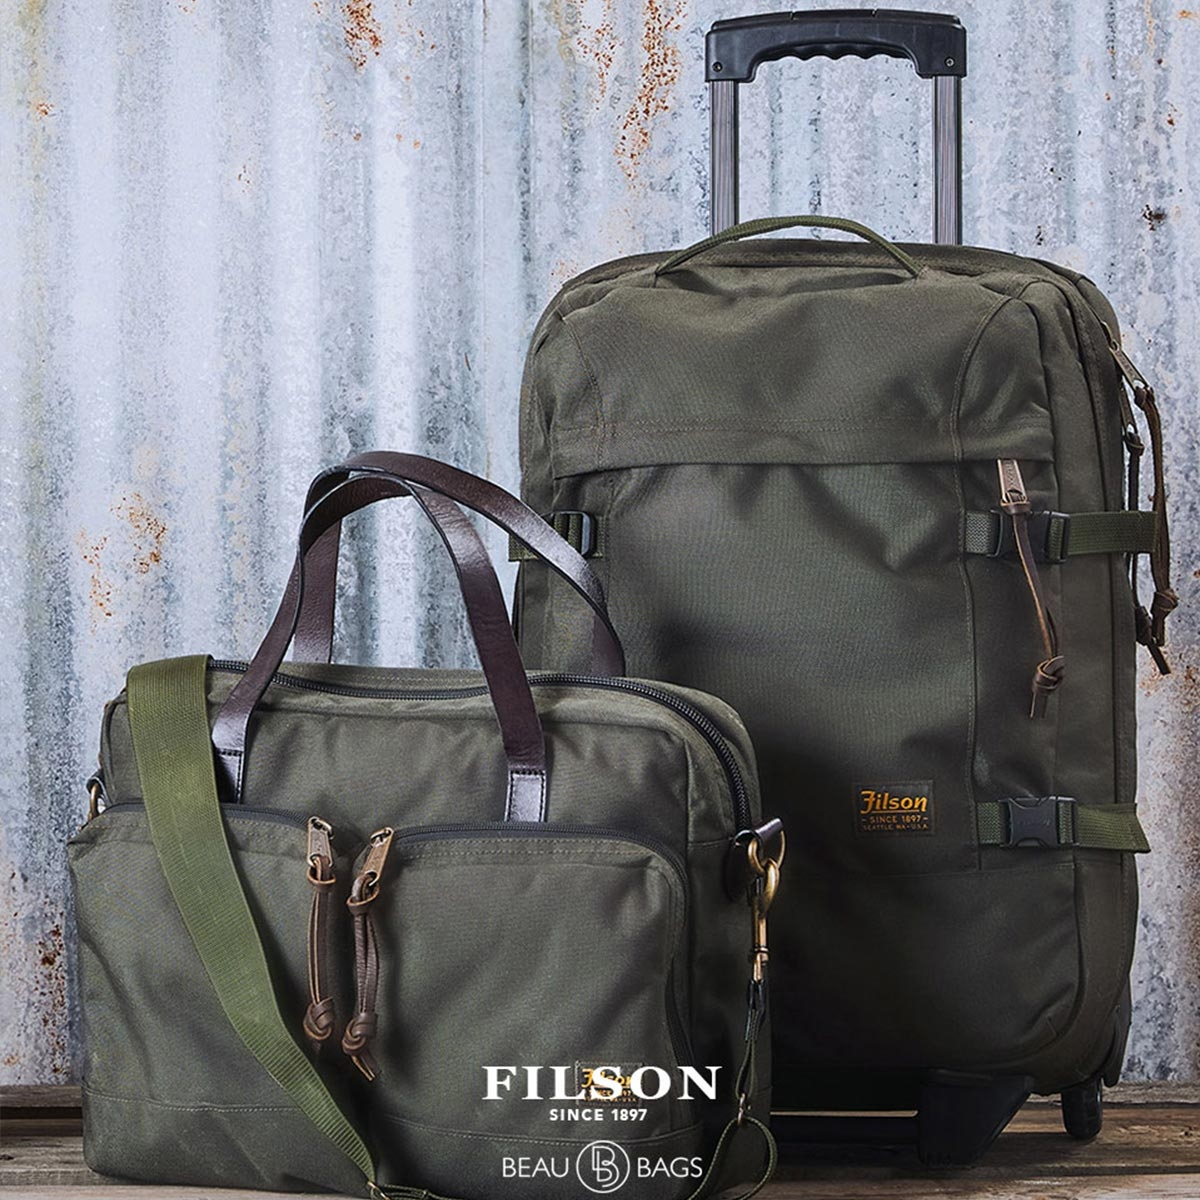 Filson Dryden Dryden 2-Wheel Rolling Carry-On Bag 20047728-Otter Green, Koffer hergestellt aus reißfestem ballistischem Nylon für jahrelanges, zuverlässiges Reisen